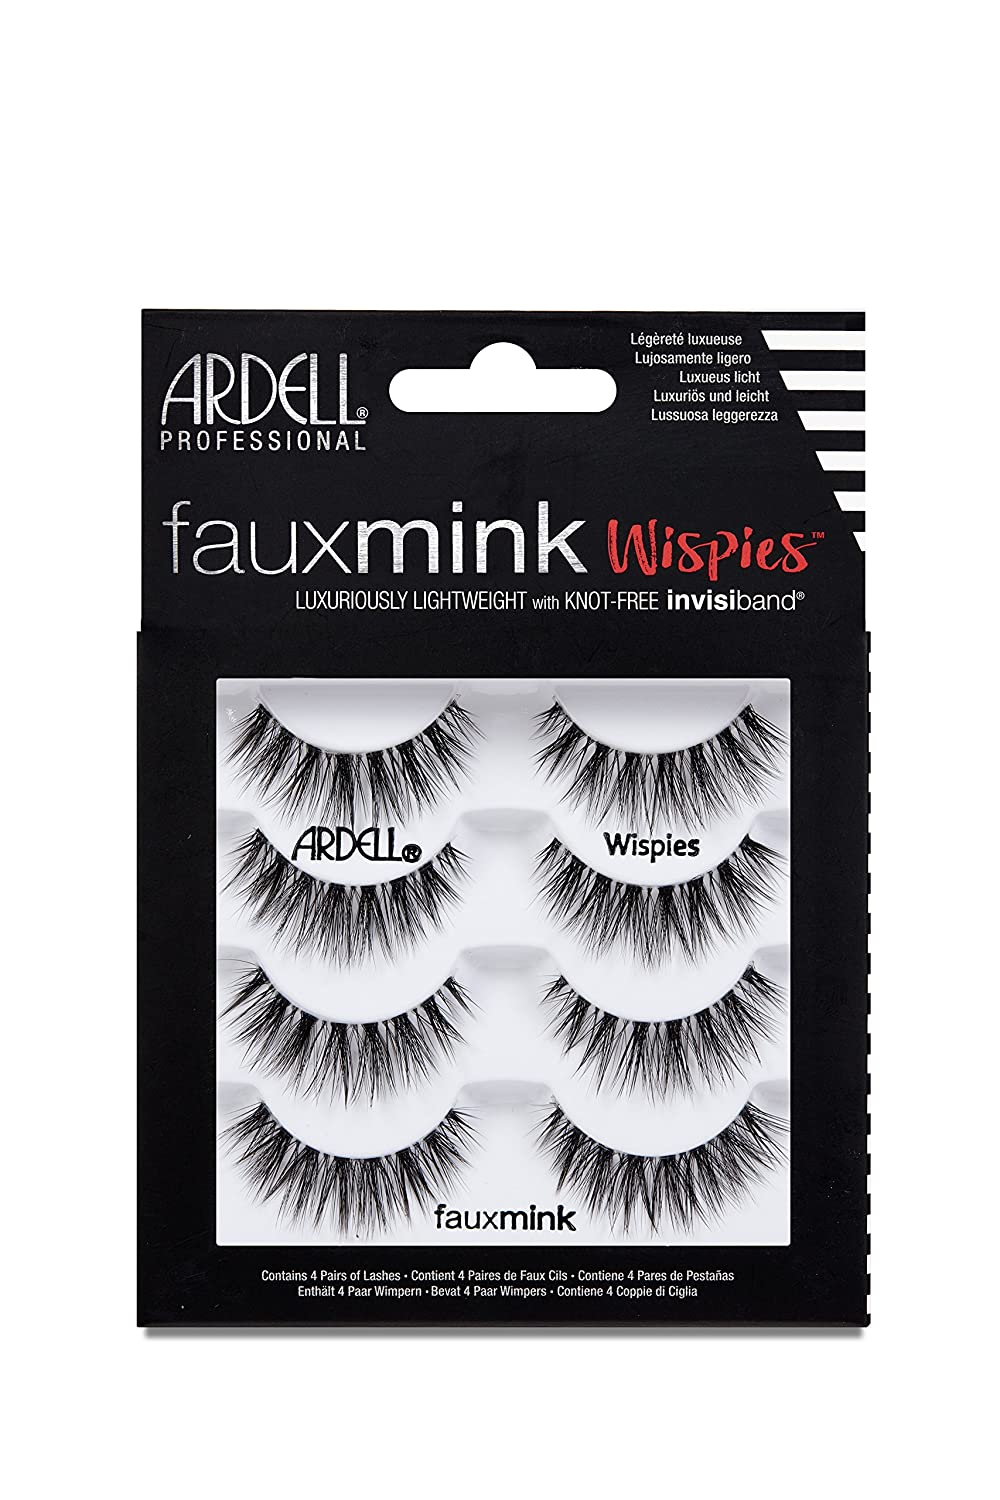 Ardell False Lashes Faux Mink Wispies Multipack, 1 pk x 4 pairs